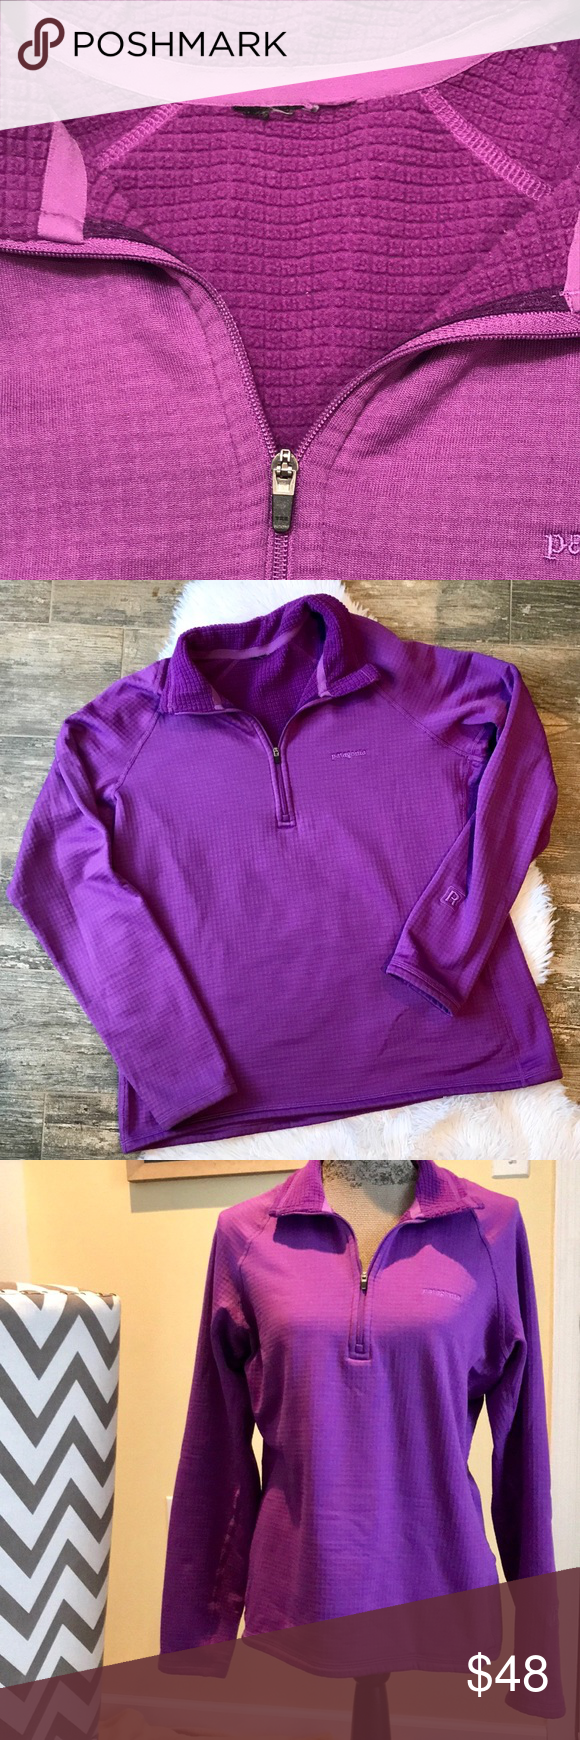 Patagonia R1 Regulator Fleece Pullover Fleece pullover